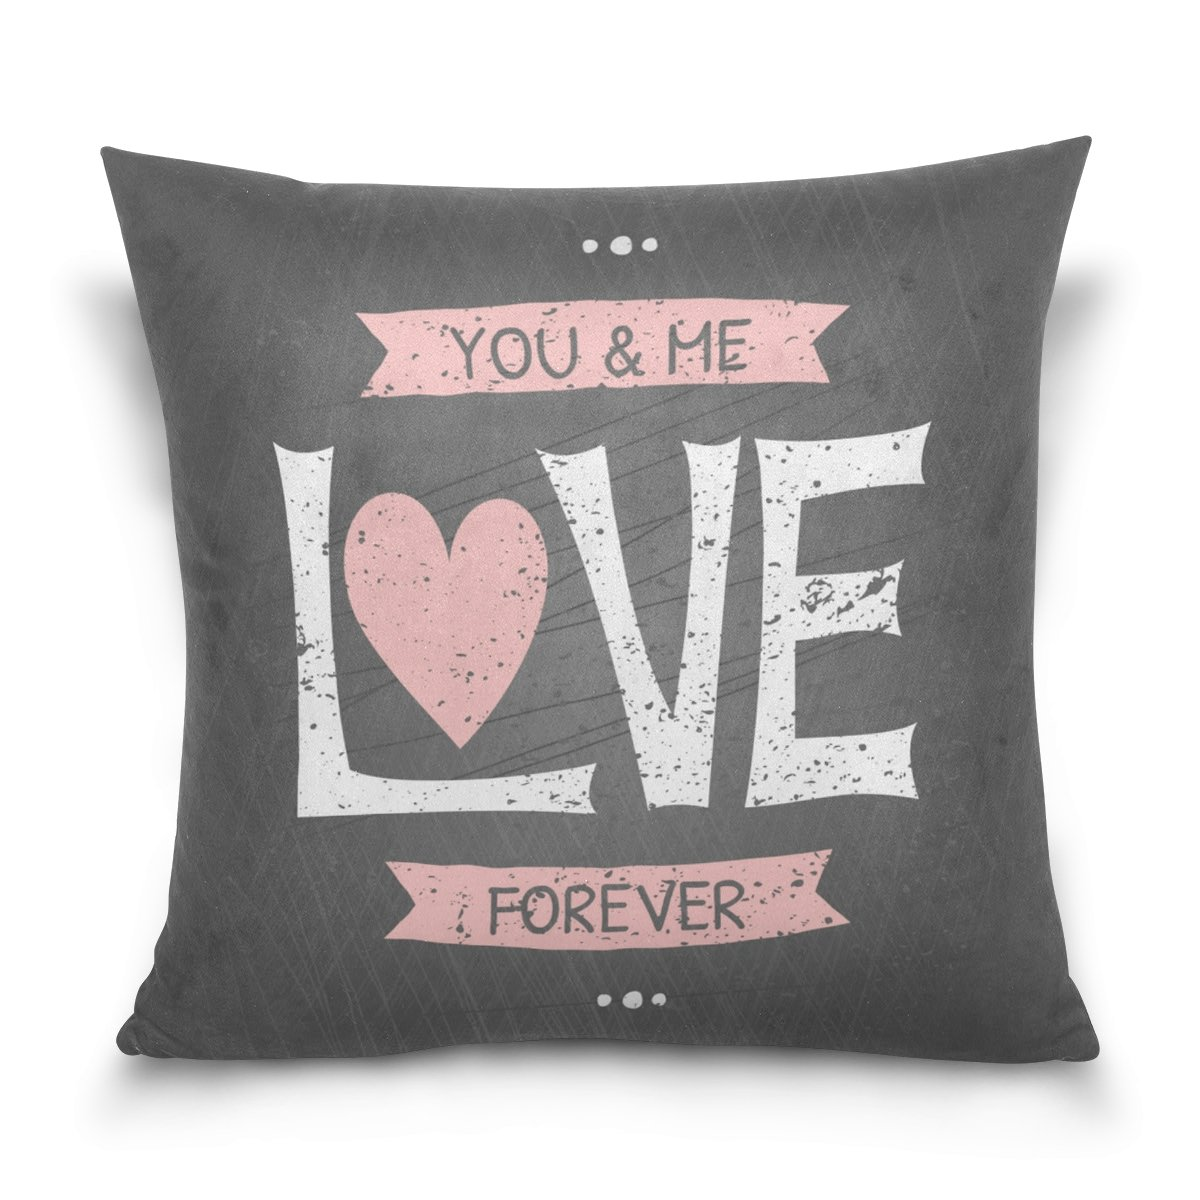 Top Carpenter You Me Love Velvet Plush Throw Pillow Cushion Case Cover - 16'' x 16'' - Invisible Zipper Home Decor Floral for Couch Sofa No Pillow Insert